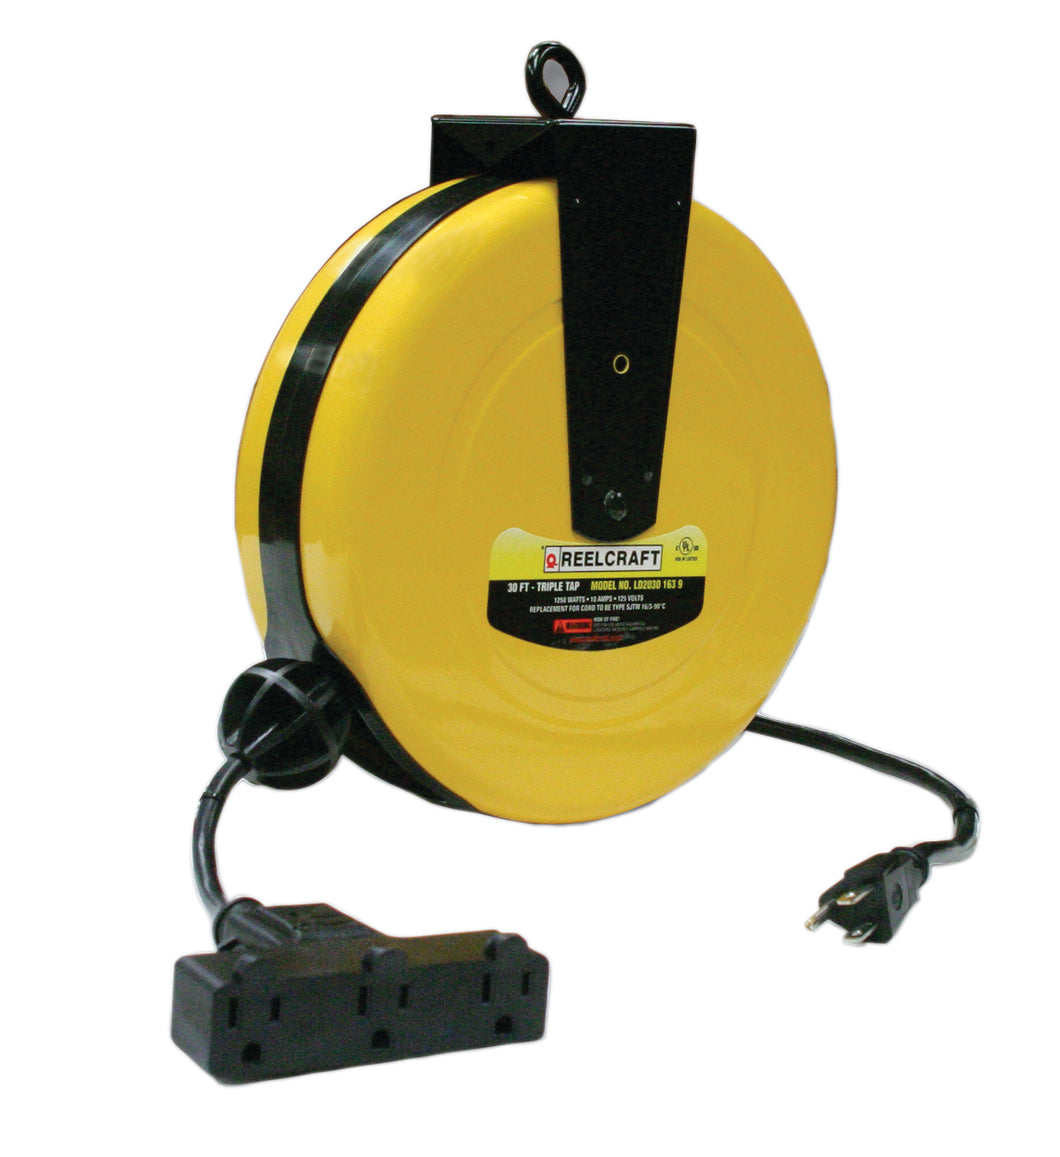 REELCRAFT LD2030 163 9 16 AWG / 3 Cond  x 30ft, 10 AMP, Triple Outlet, With Cord freeshipping - Empire Lube Equipment